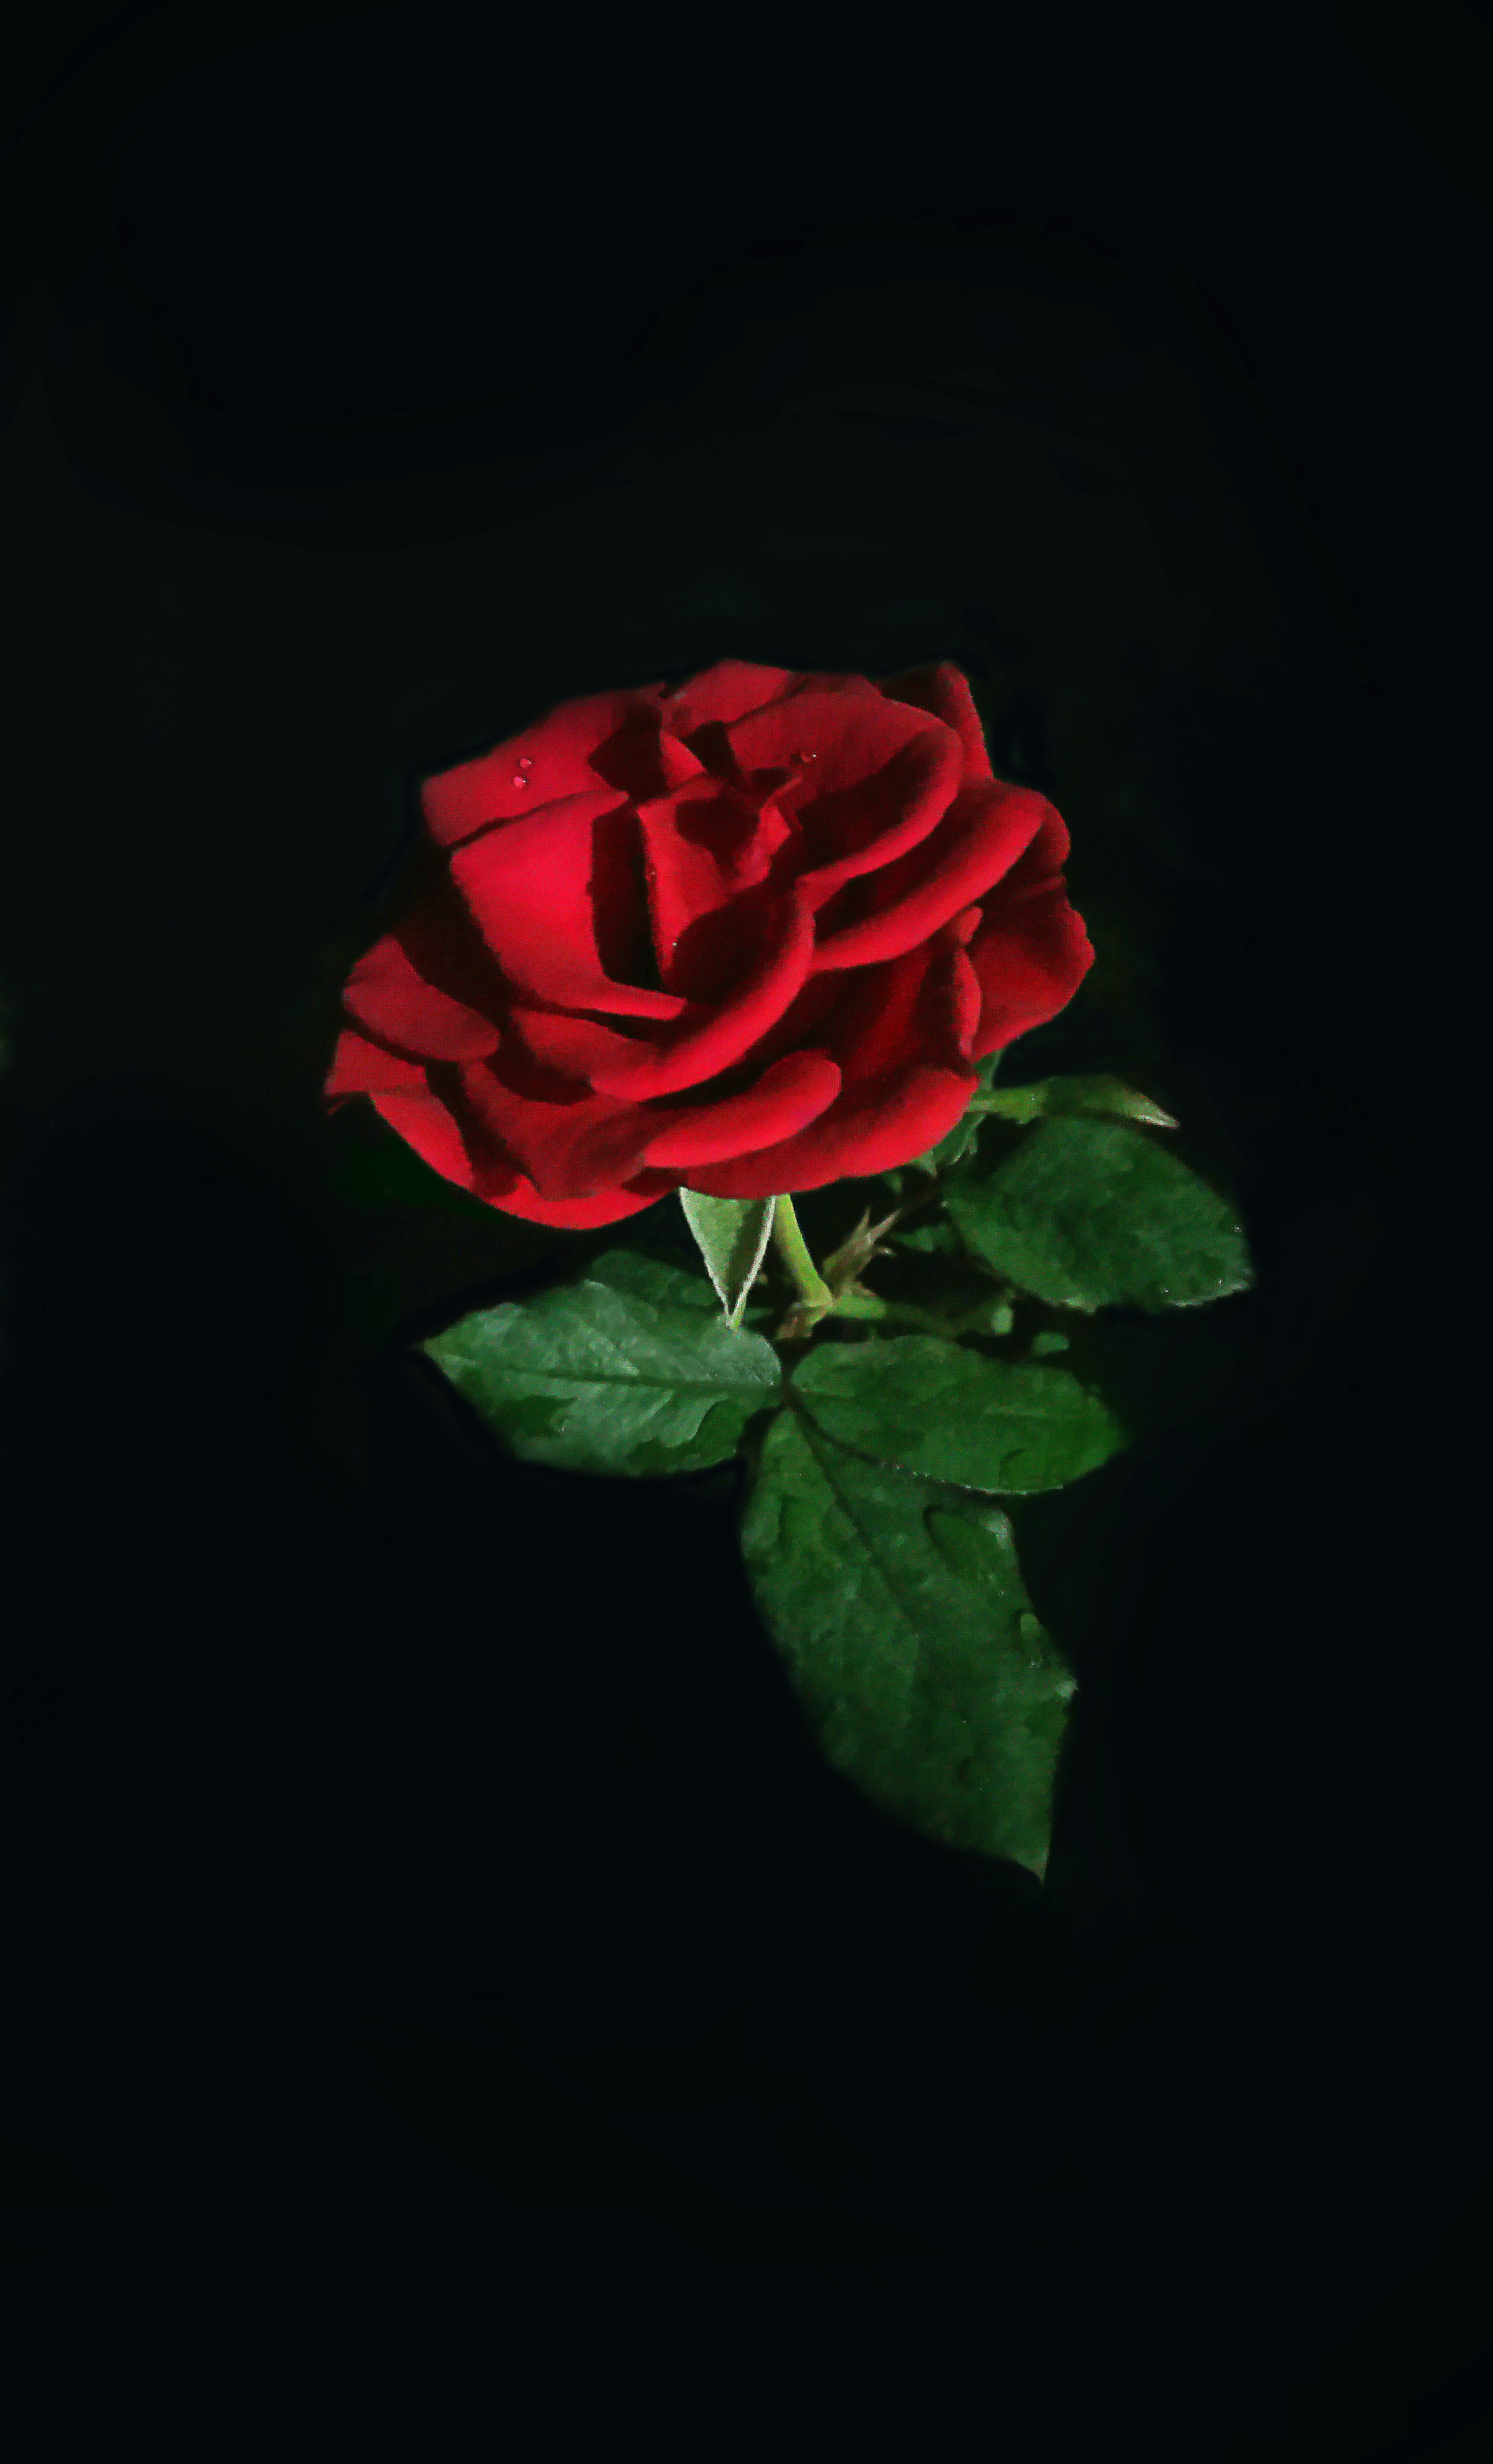 Free stock photo of darkness, Red Rose, rose leaf, water drop